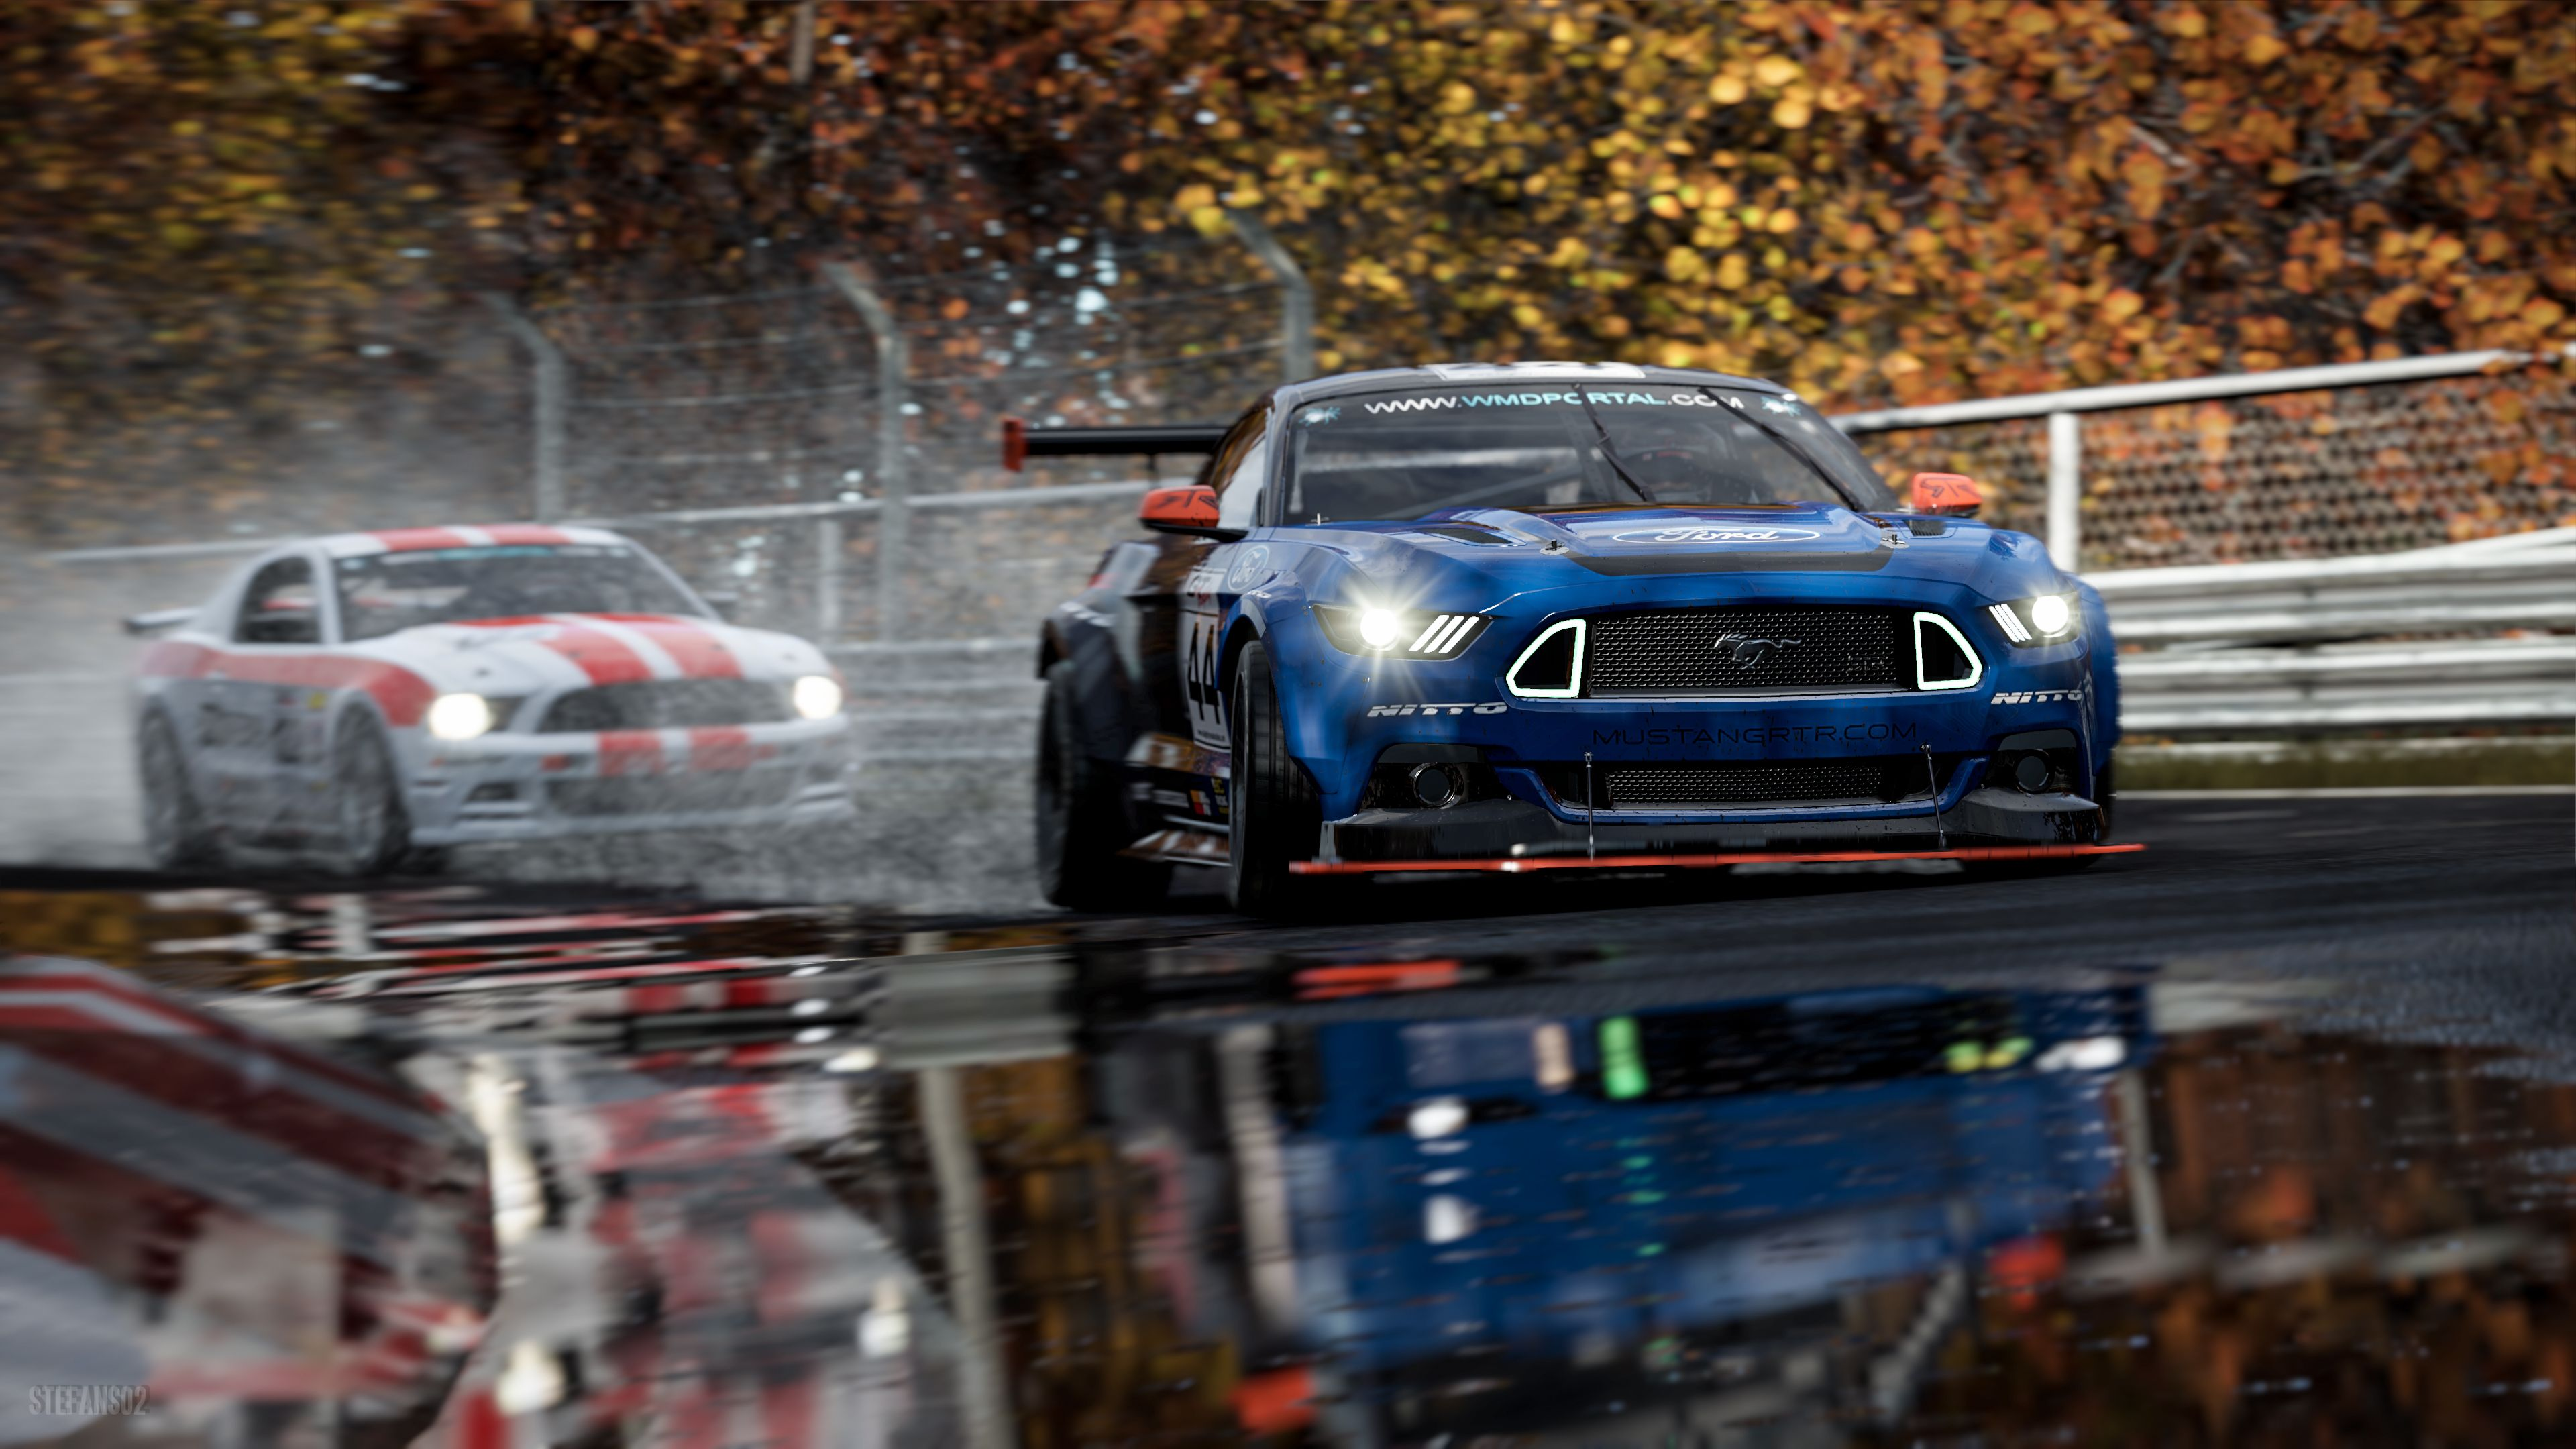 Ford Mustang Rtr Project Cars 2 4k Project Cars 2 Wallpapers Hd Wallpapers Games Wallpapers Ford Wallpapers Ford Mustang Wallpapers Cars Wallpapers 4k Wal